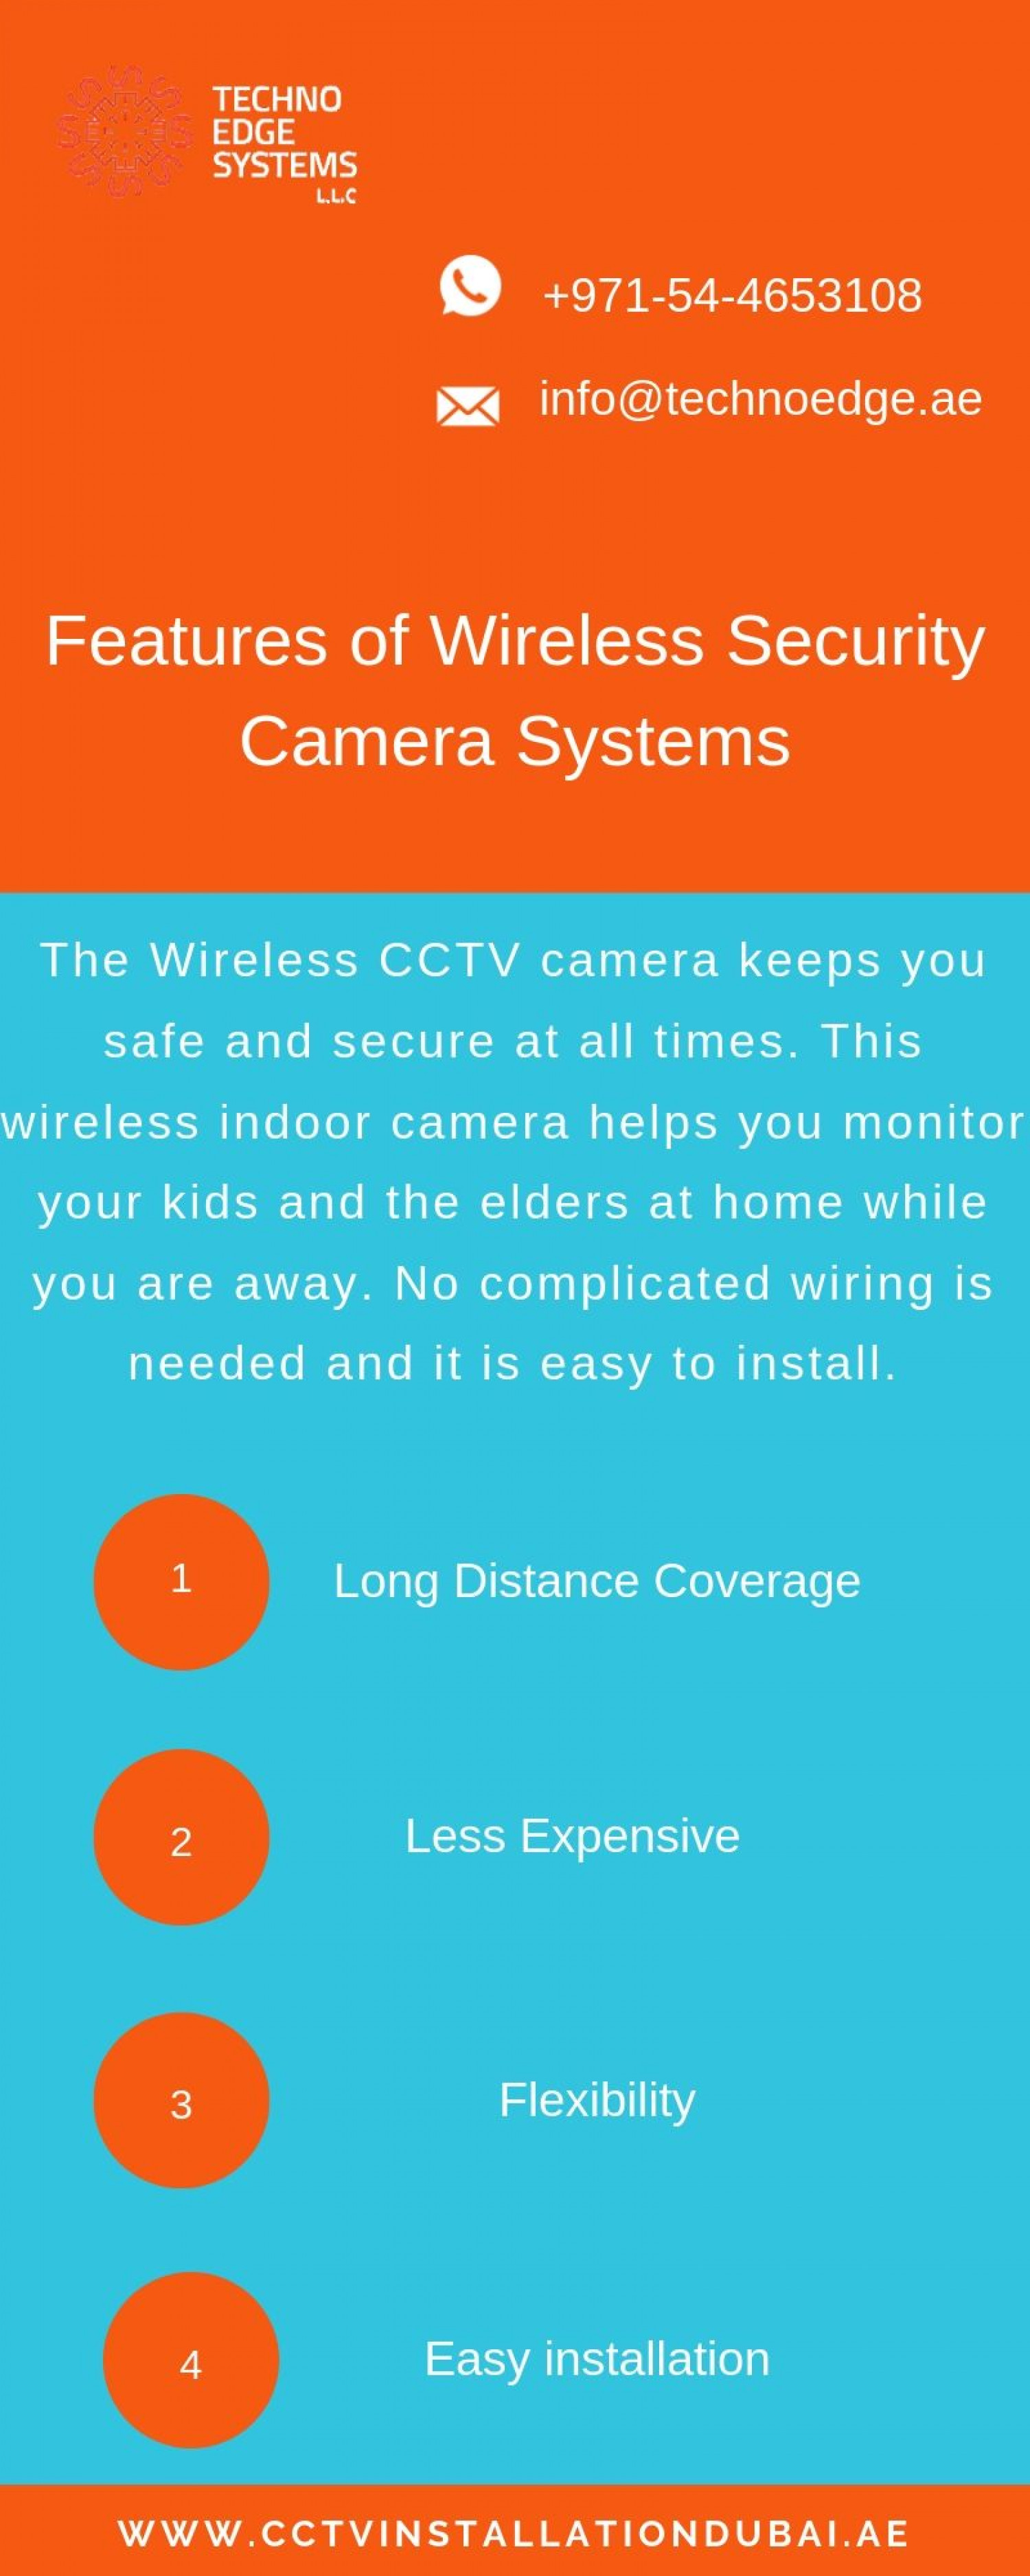 Features of Wireless Security Camera Systems Infographic